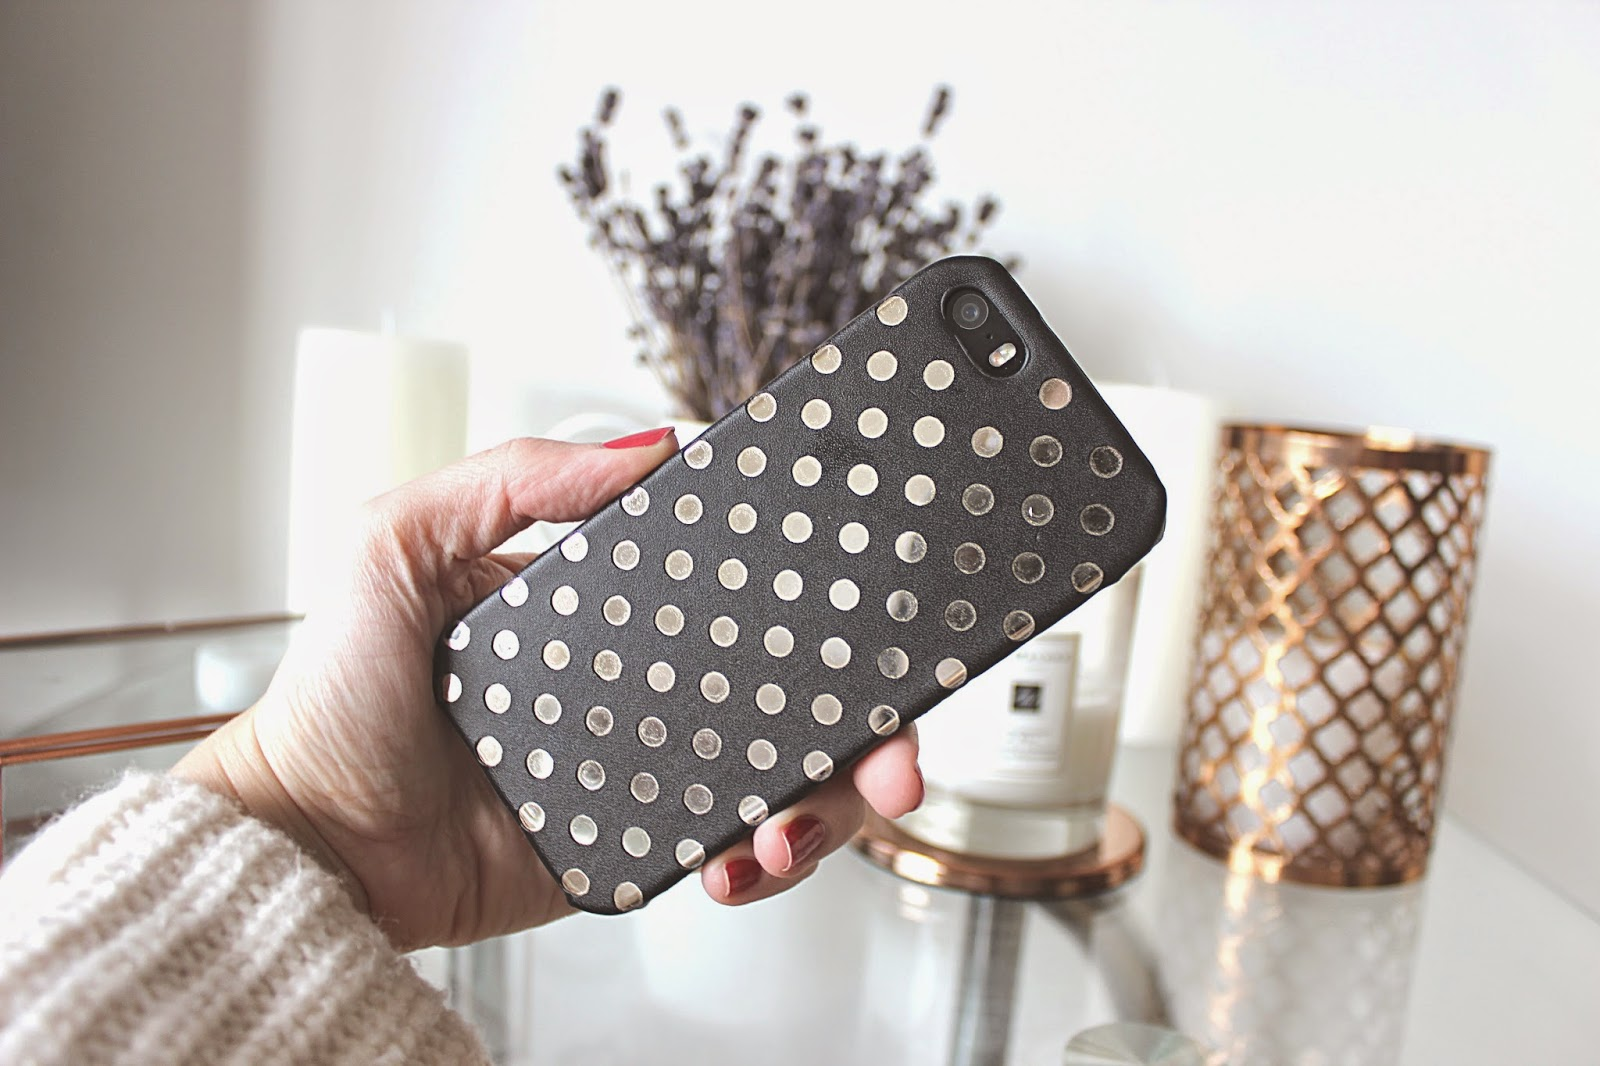 Kate Spade Like Phone Case